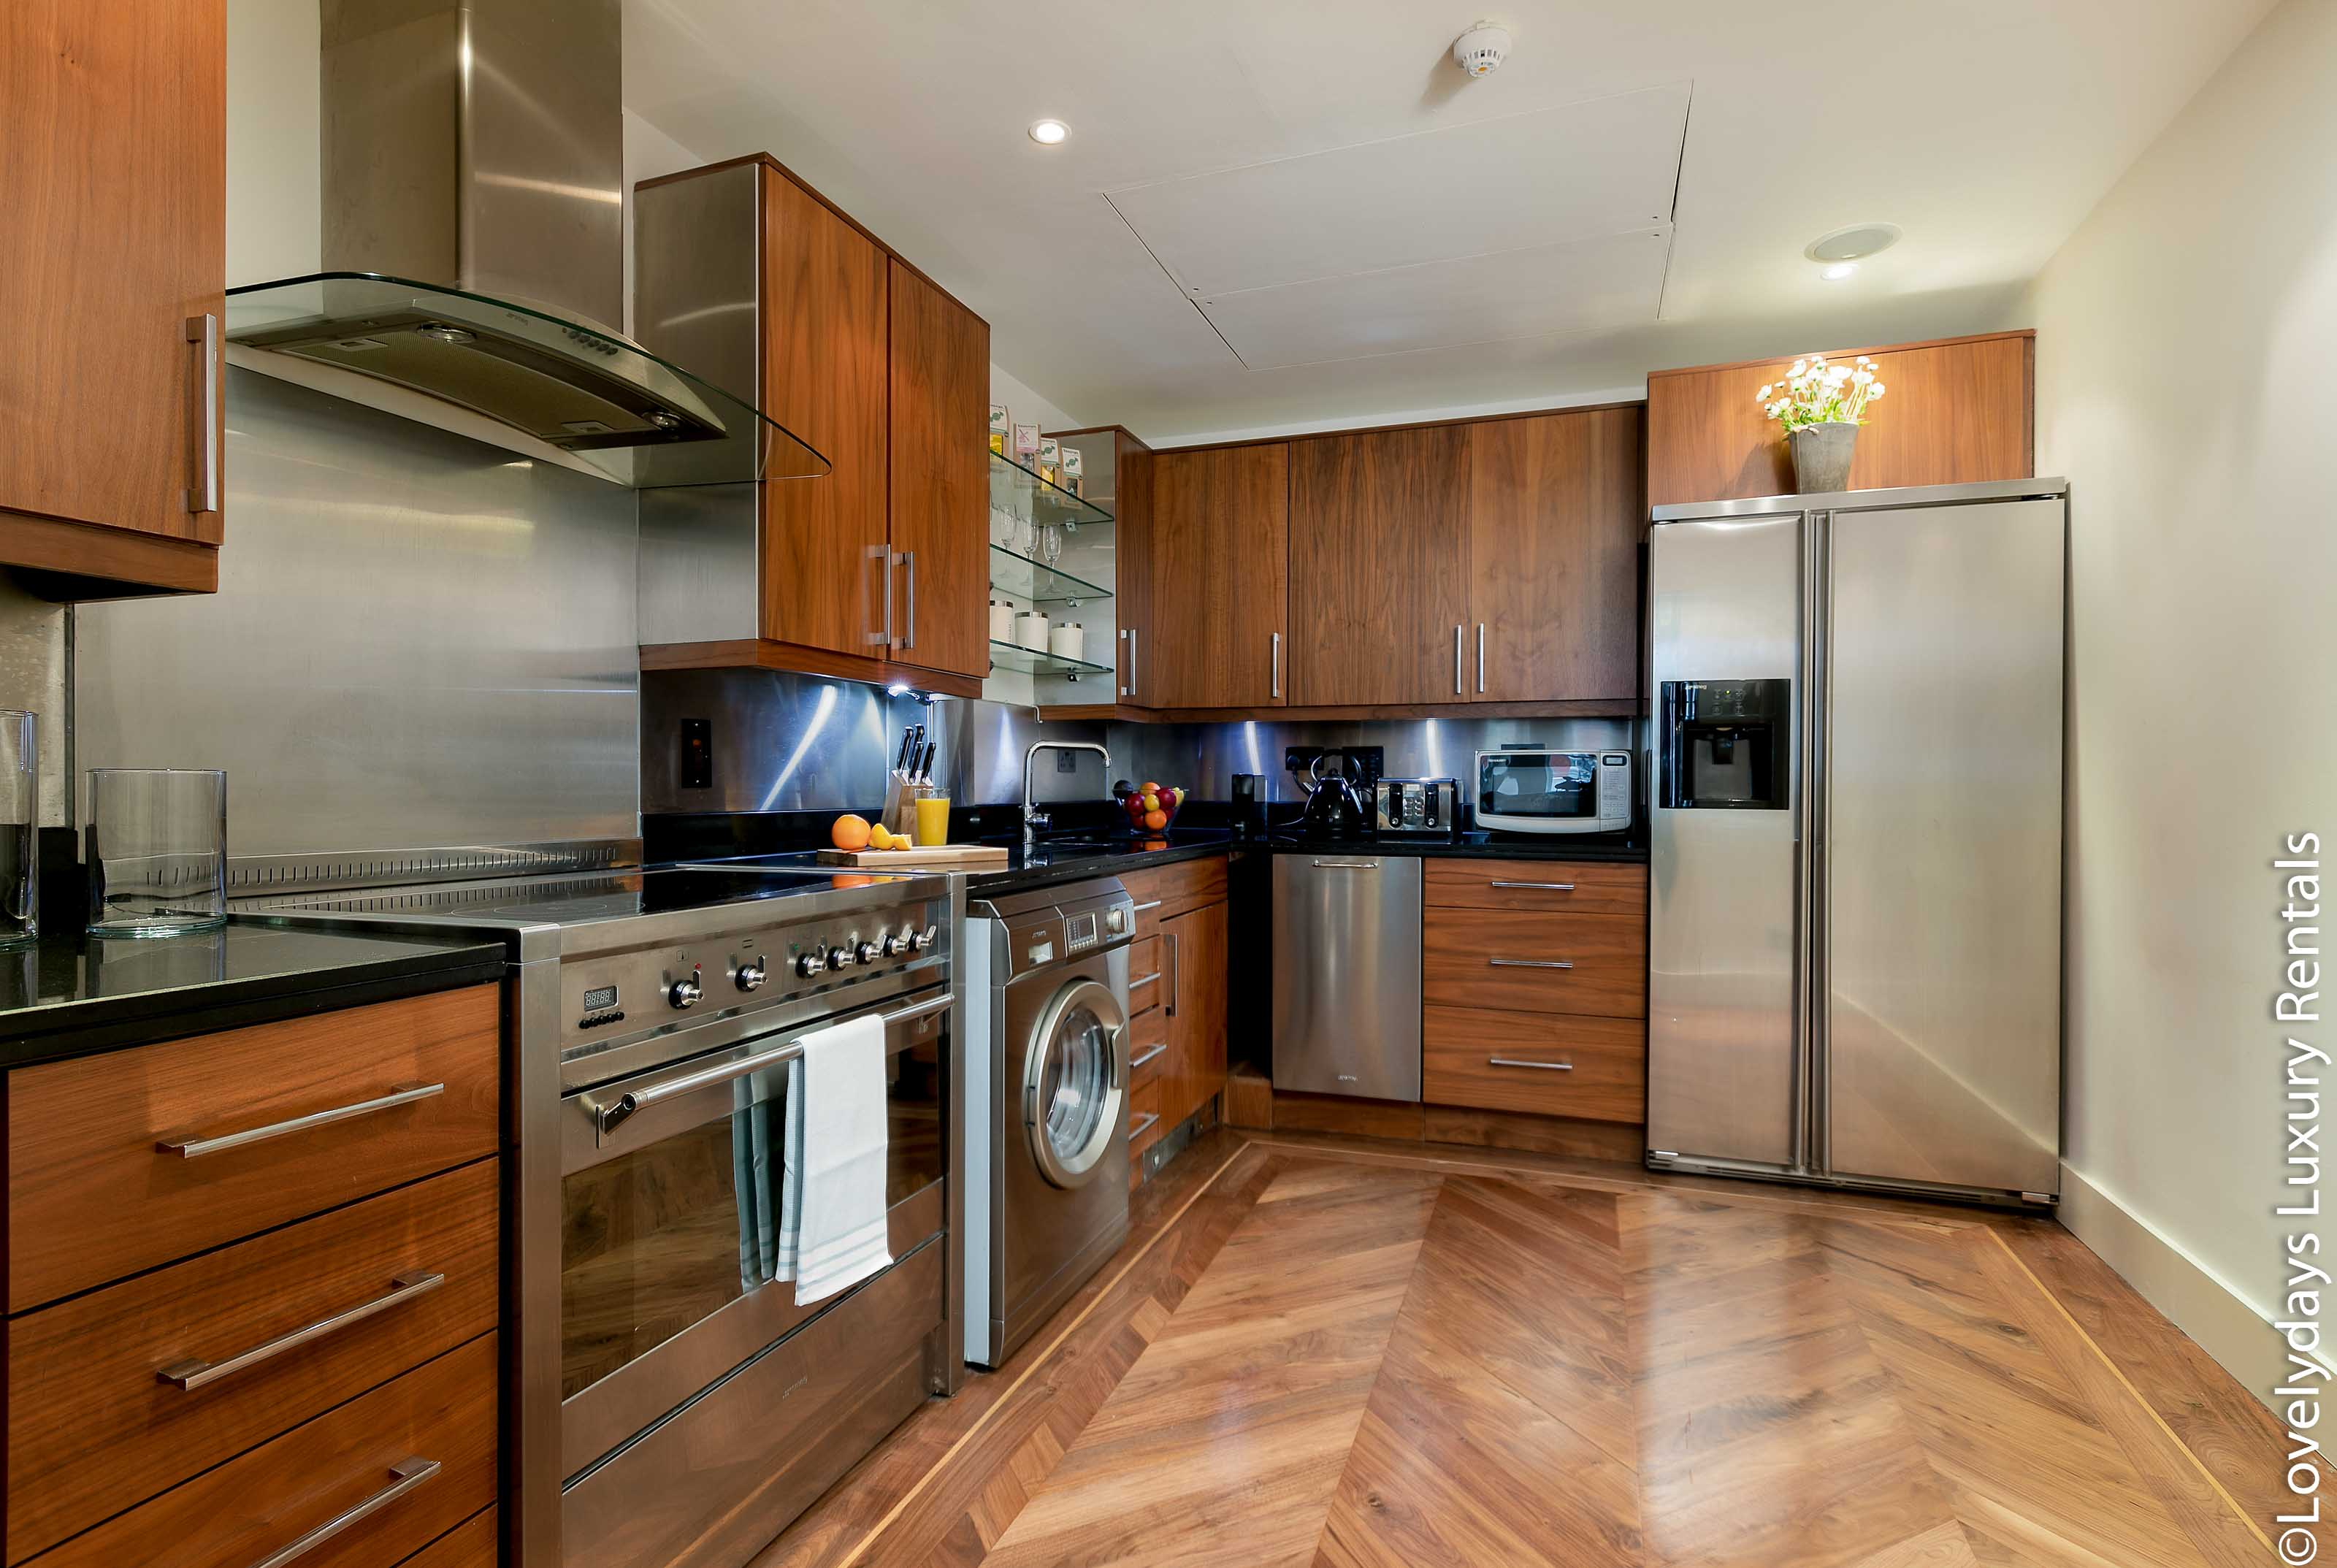 Lovelydays luxury service apartment rental - London - Knightsbridge - Hans Crescent - Partner - 2 bedrooms - 2 bathrooms - Luxury kitchen - 74652adaadbd - Lovelydays